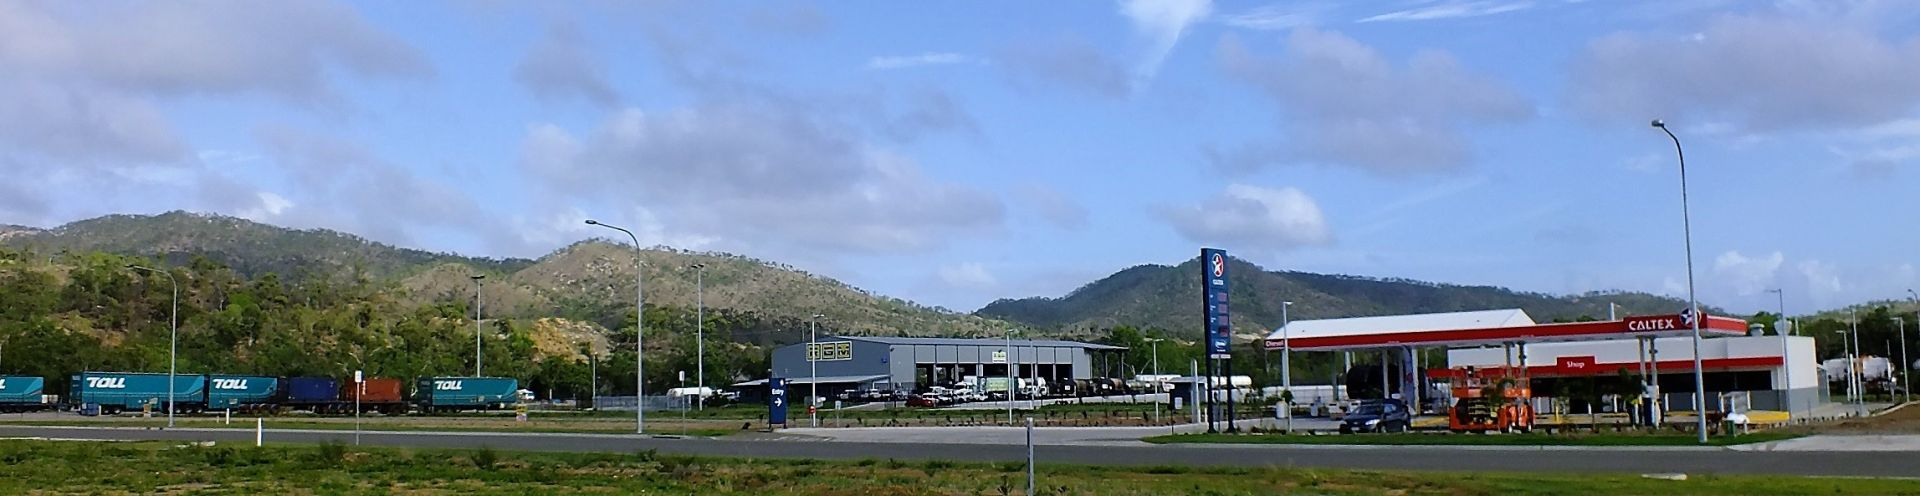 Townsville Distribution Precinct - Freehold Industrial Land Available